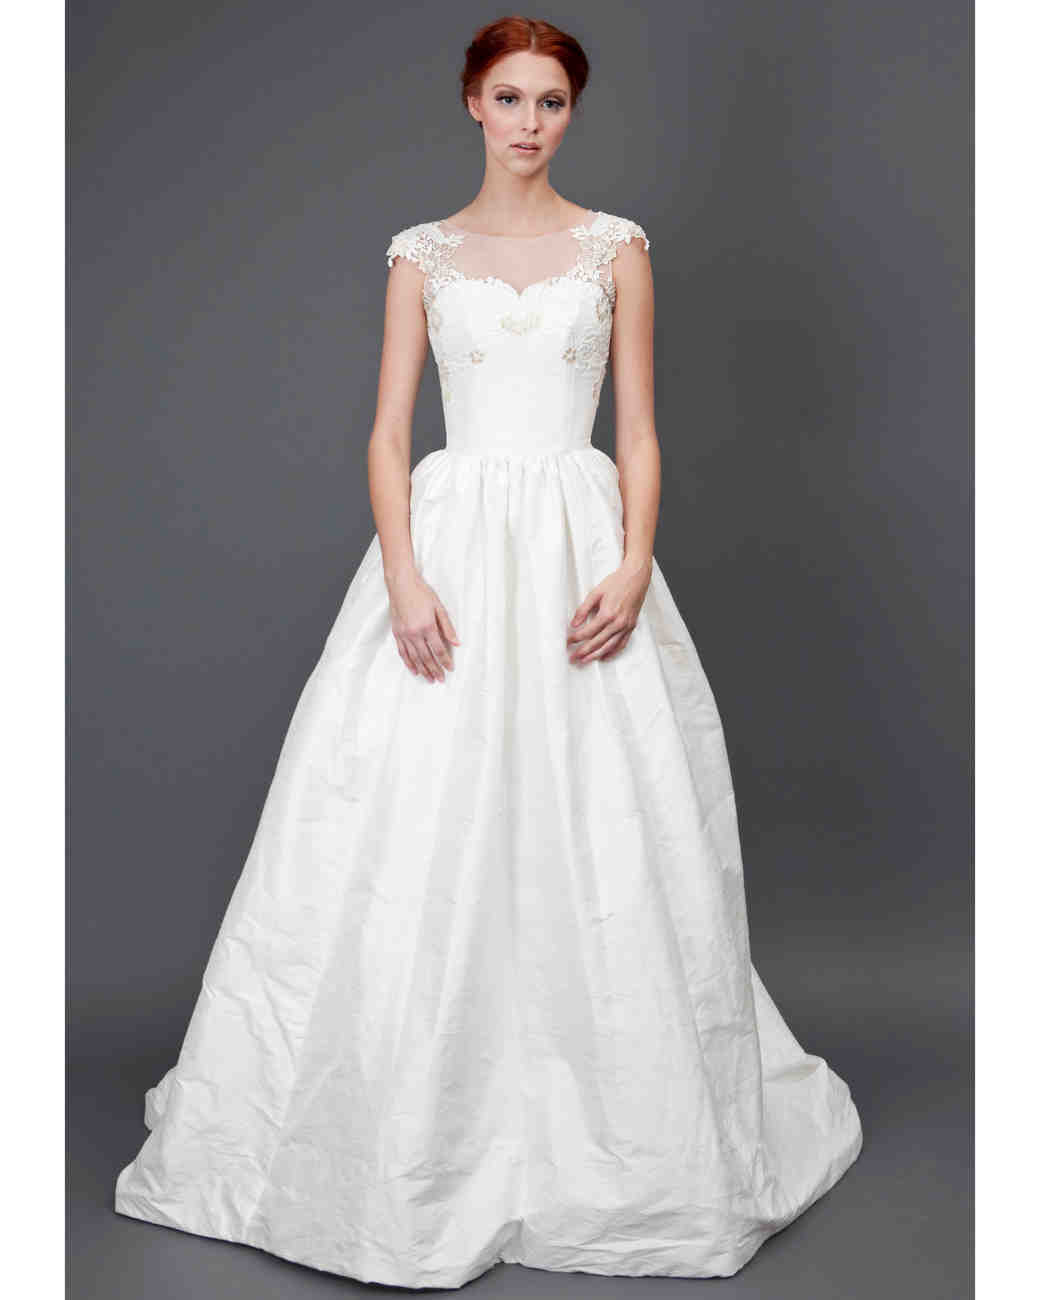 Modern Lord And Taylor Bridal Gowns Picture Collection - Ball Gown ...